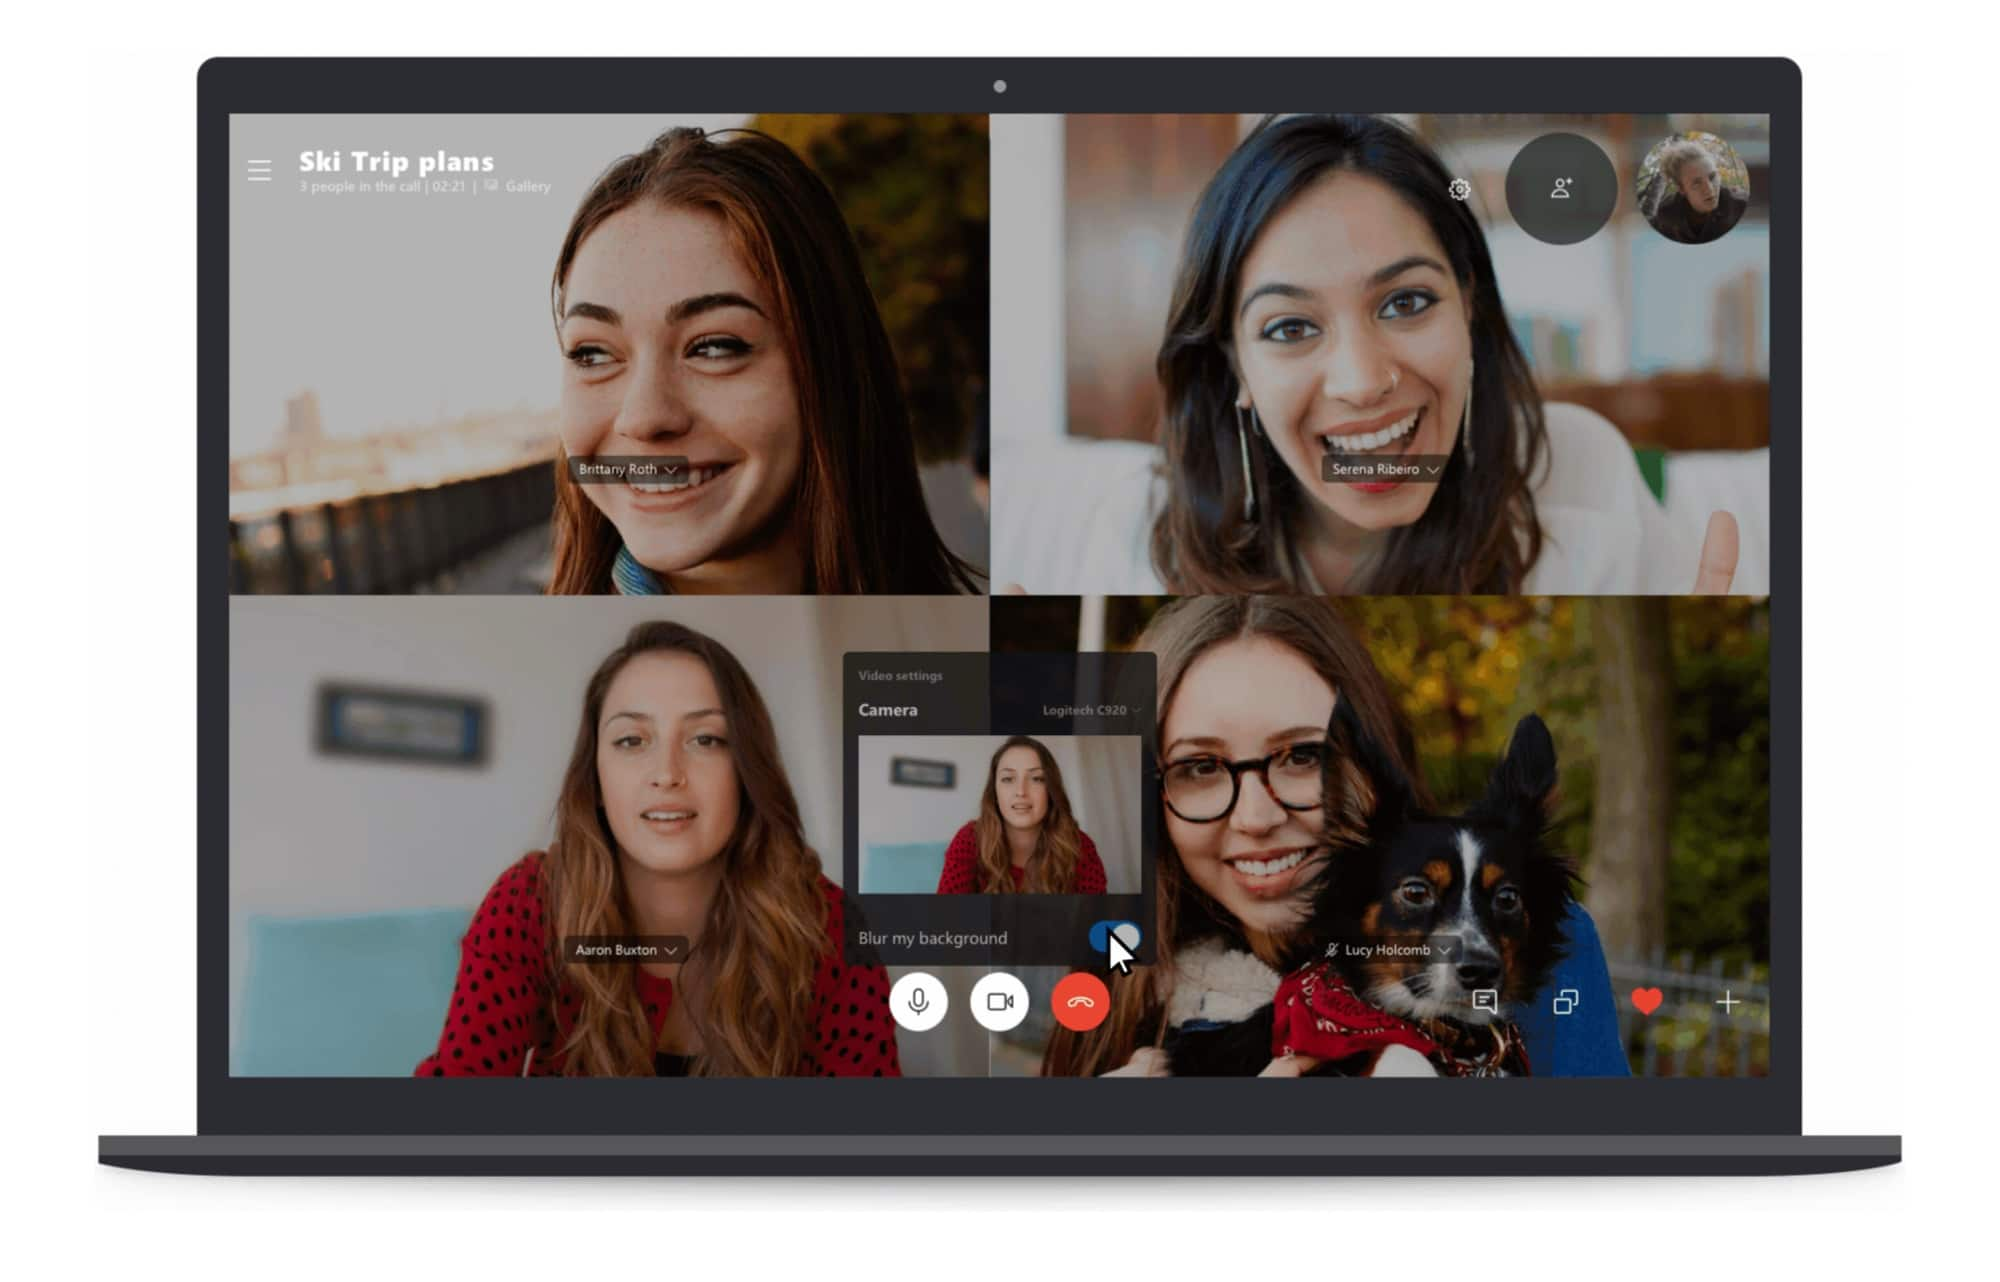 Skype now blurs backgrounds.